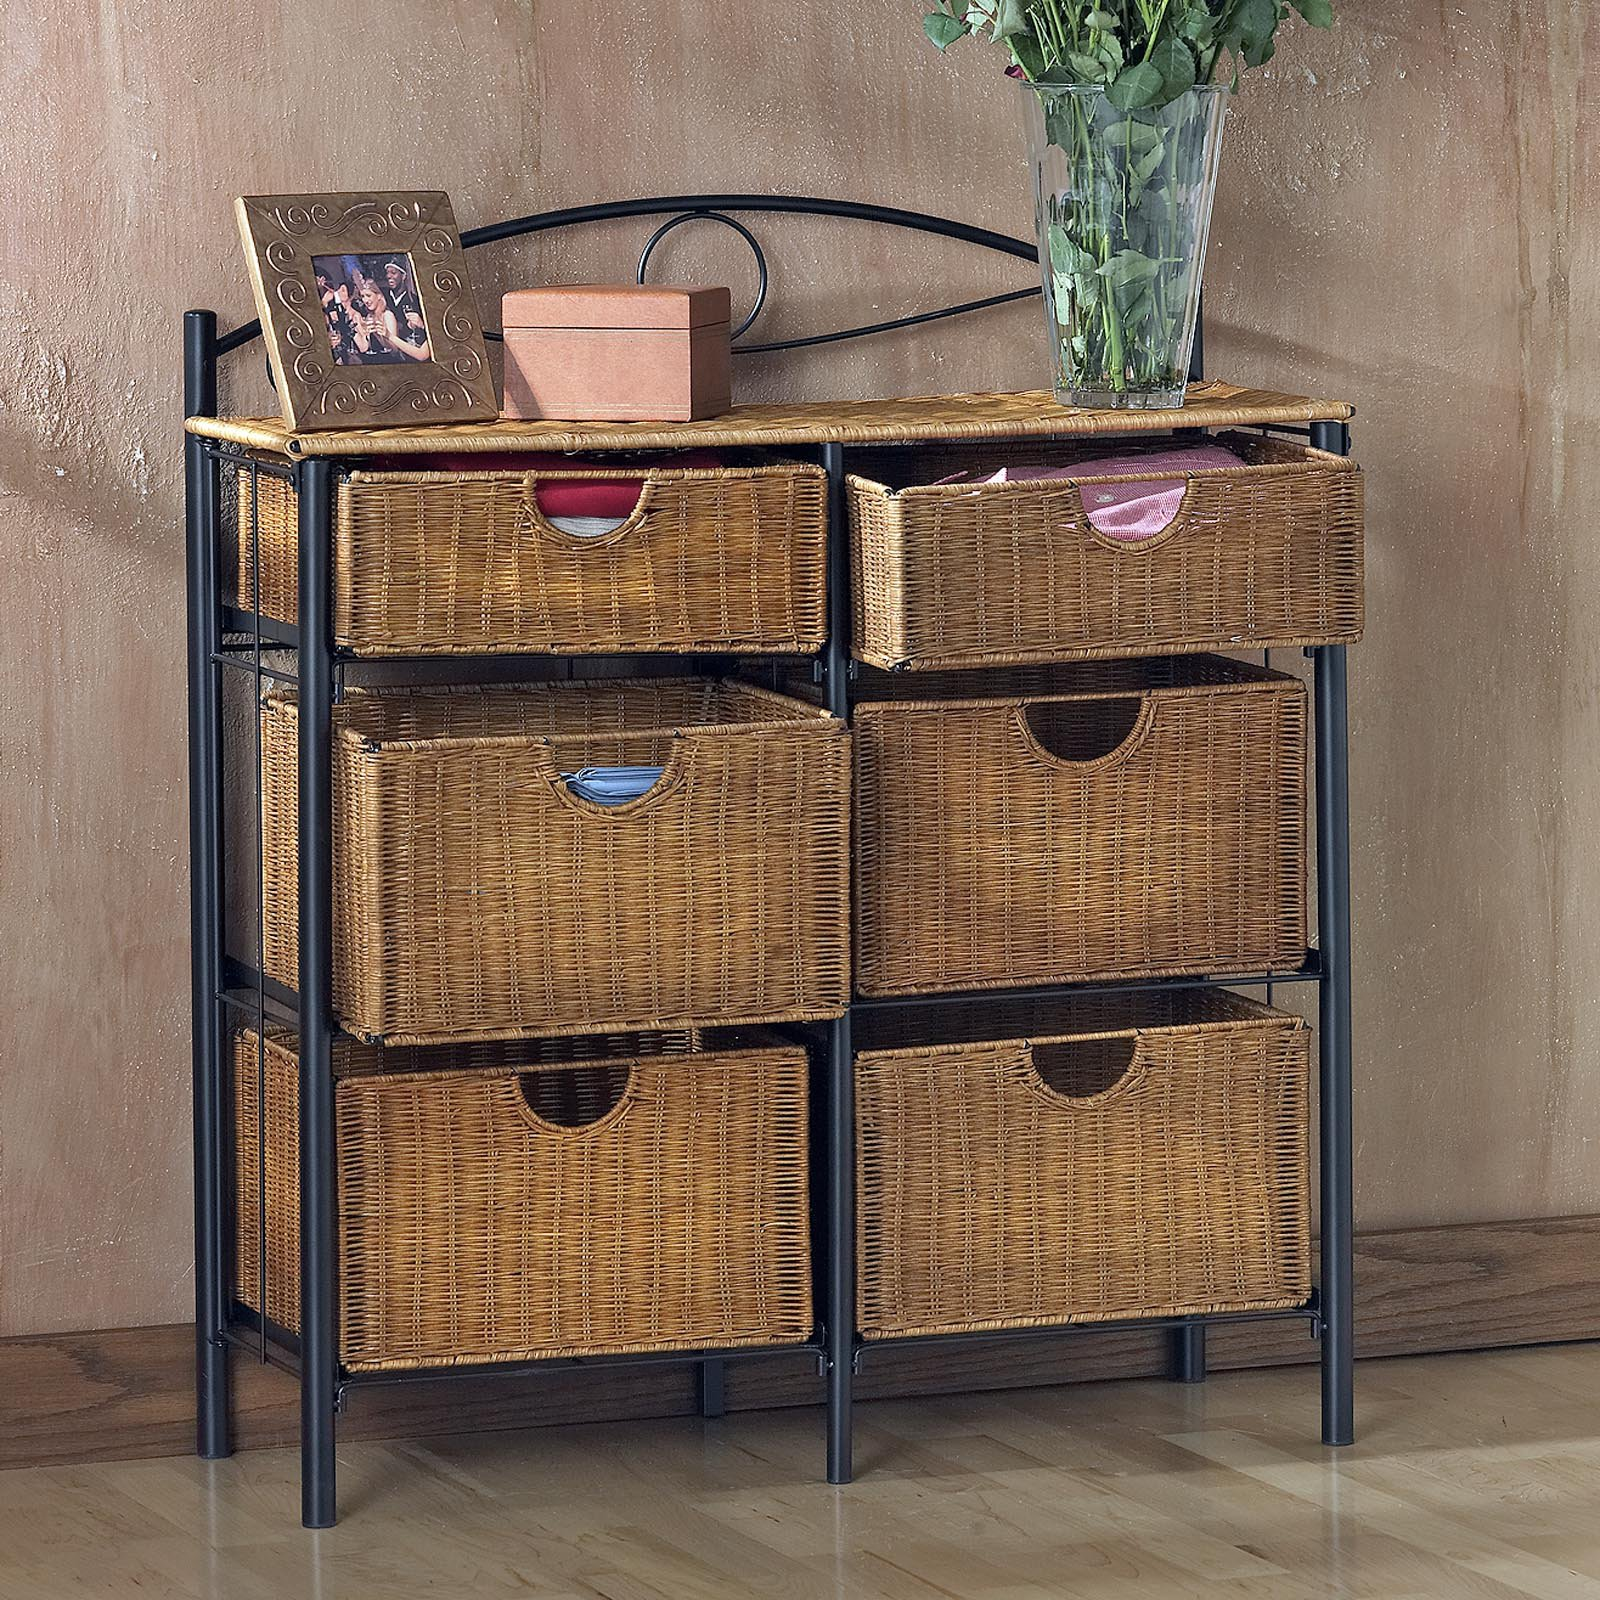 SEI 6-Drawer Wicker Storage Chest by Southern Enterprises Inc